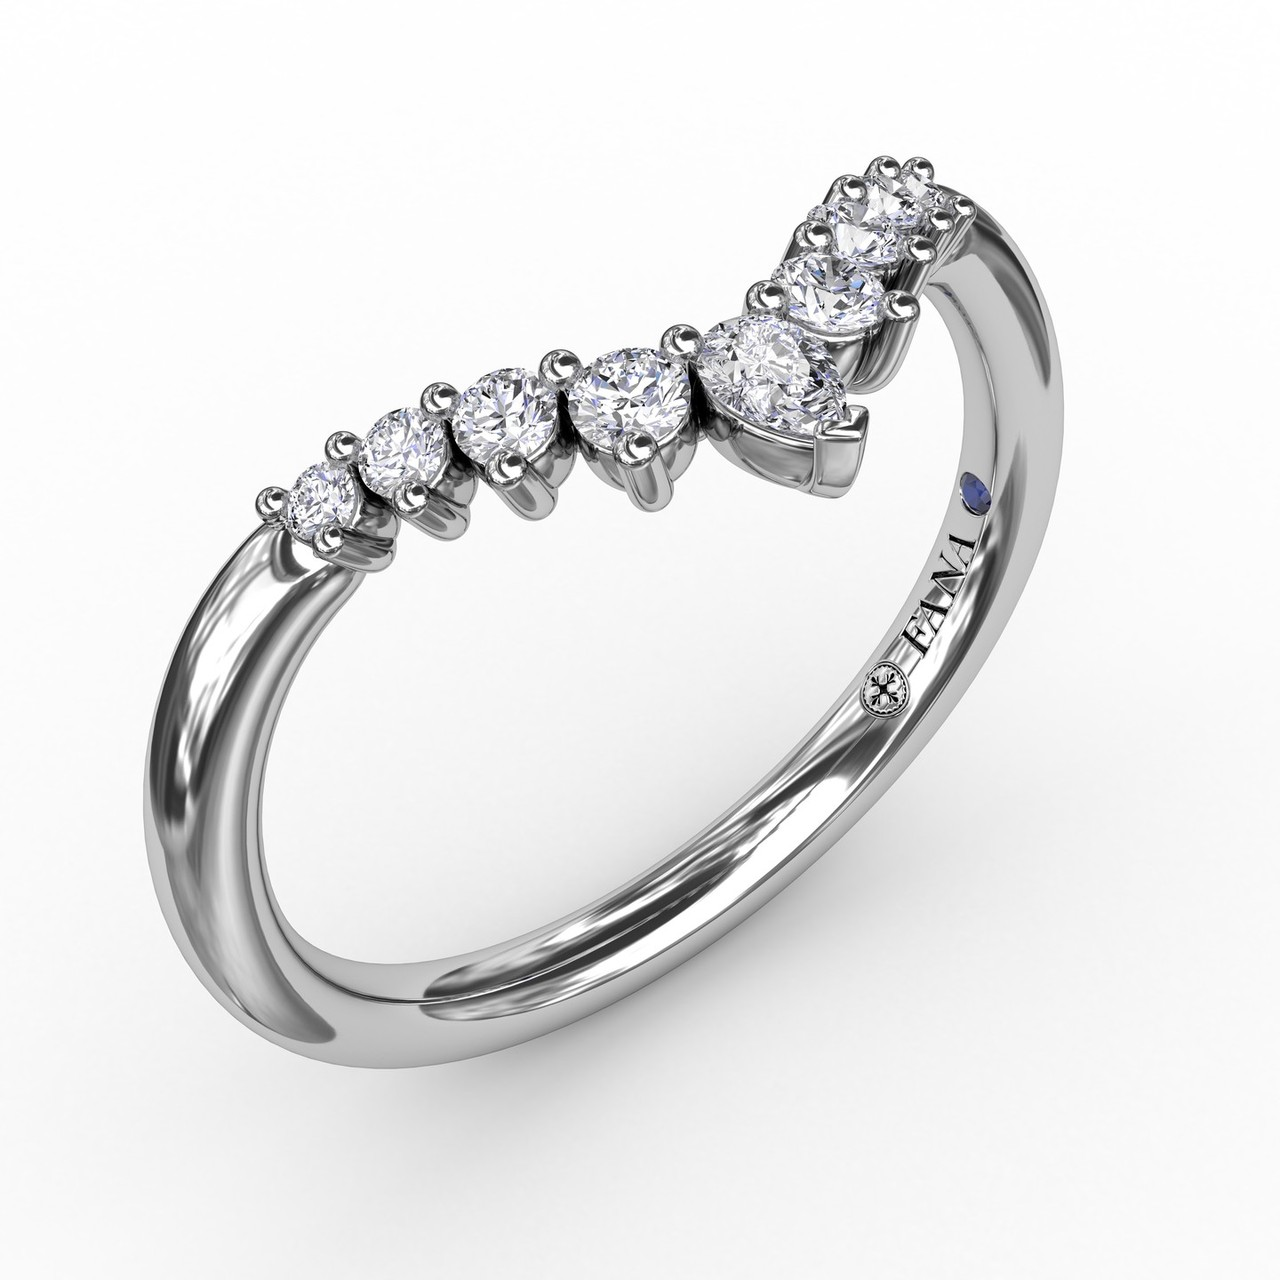 Prong Set Chevron Diamond Band - Simply darling, our prong set chevron band is meticulously set with tapered diamonds and topped off with a dazzling pear shaped diamond.  Perfect for stacking, this band is available in Platinum, 18KT & 14KT gold and can be customized through an Authorized Fana Retailer.